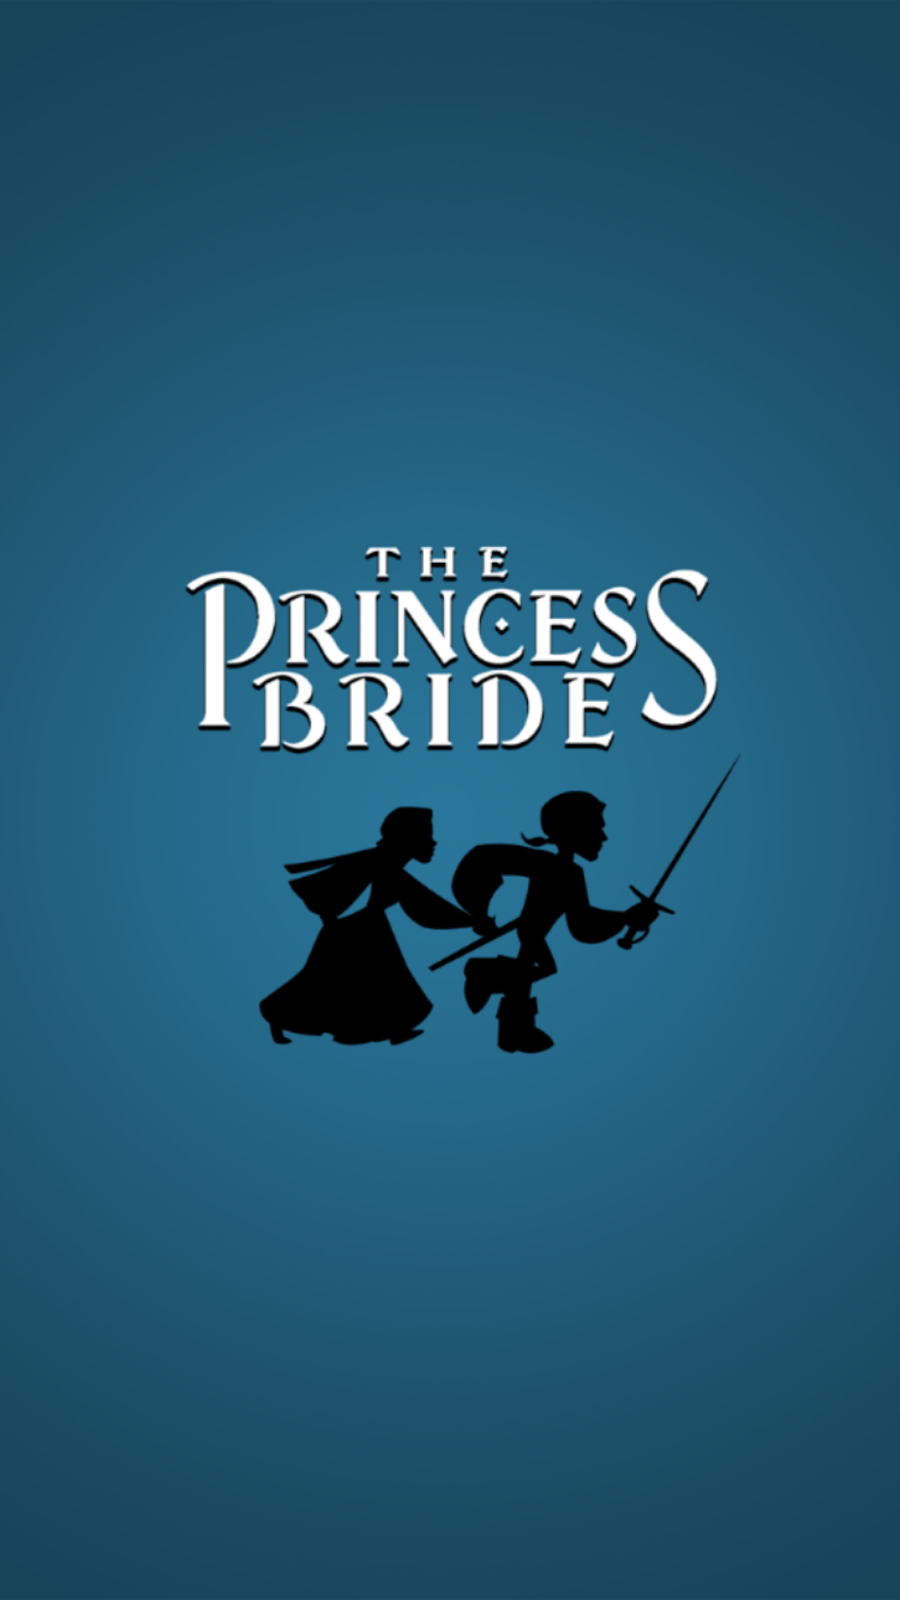 https://itunes.apple.com/us/app/princess-bride-official-game/id910244872?mt=8